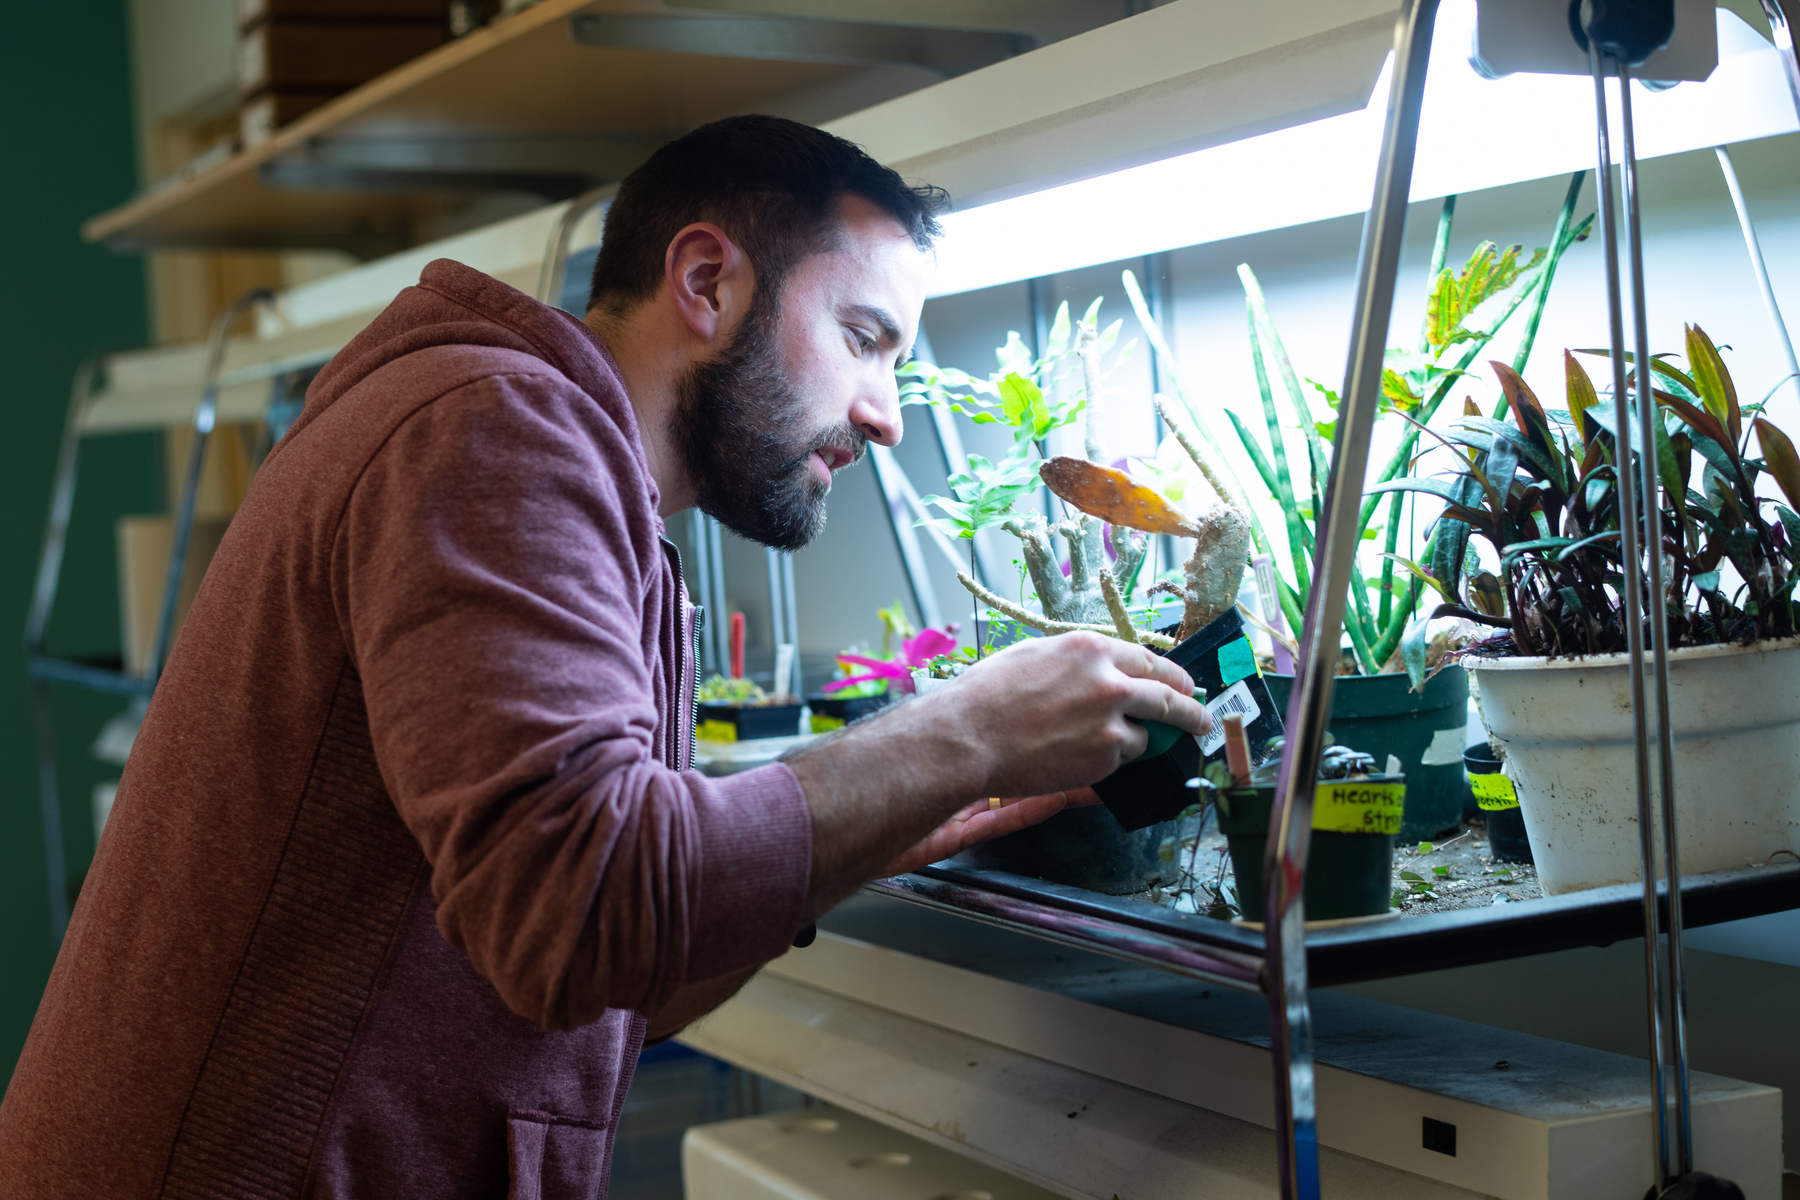 A biology student examines plants on a lab shelf